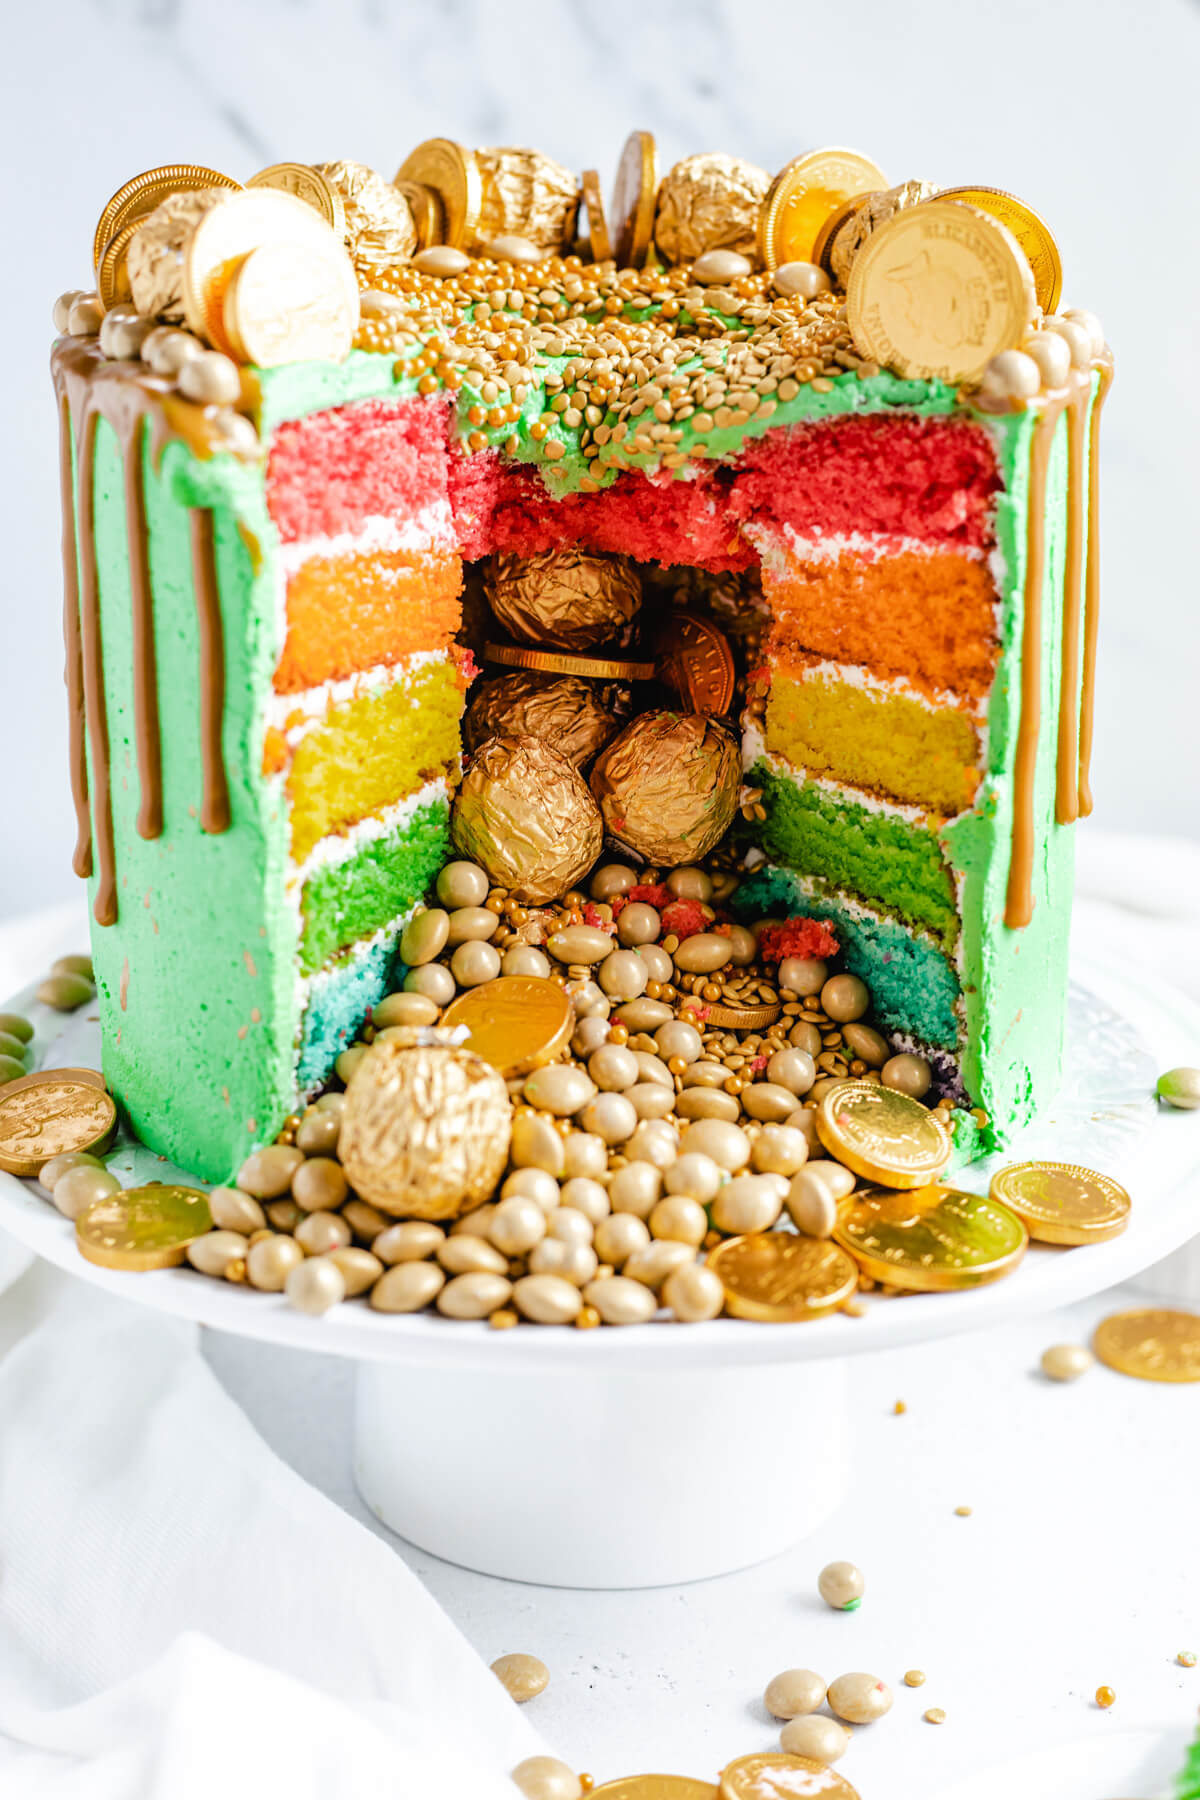 gold candies and sprinkles spilling out of a cake